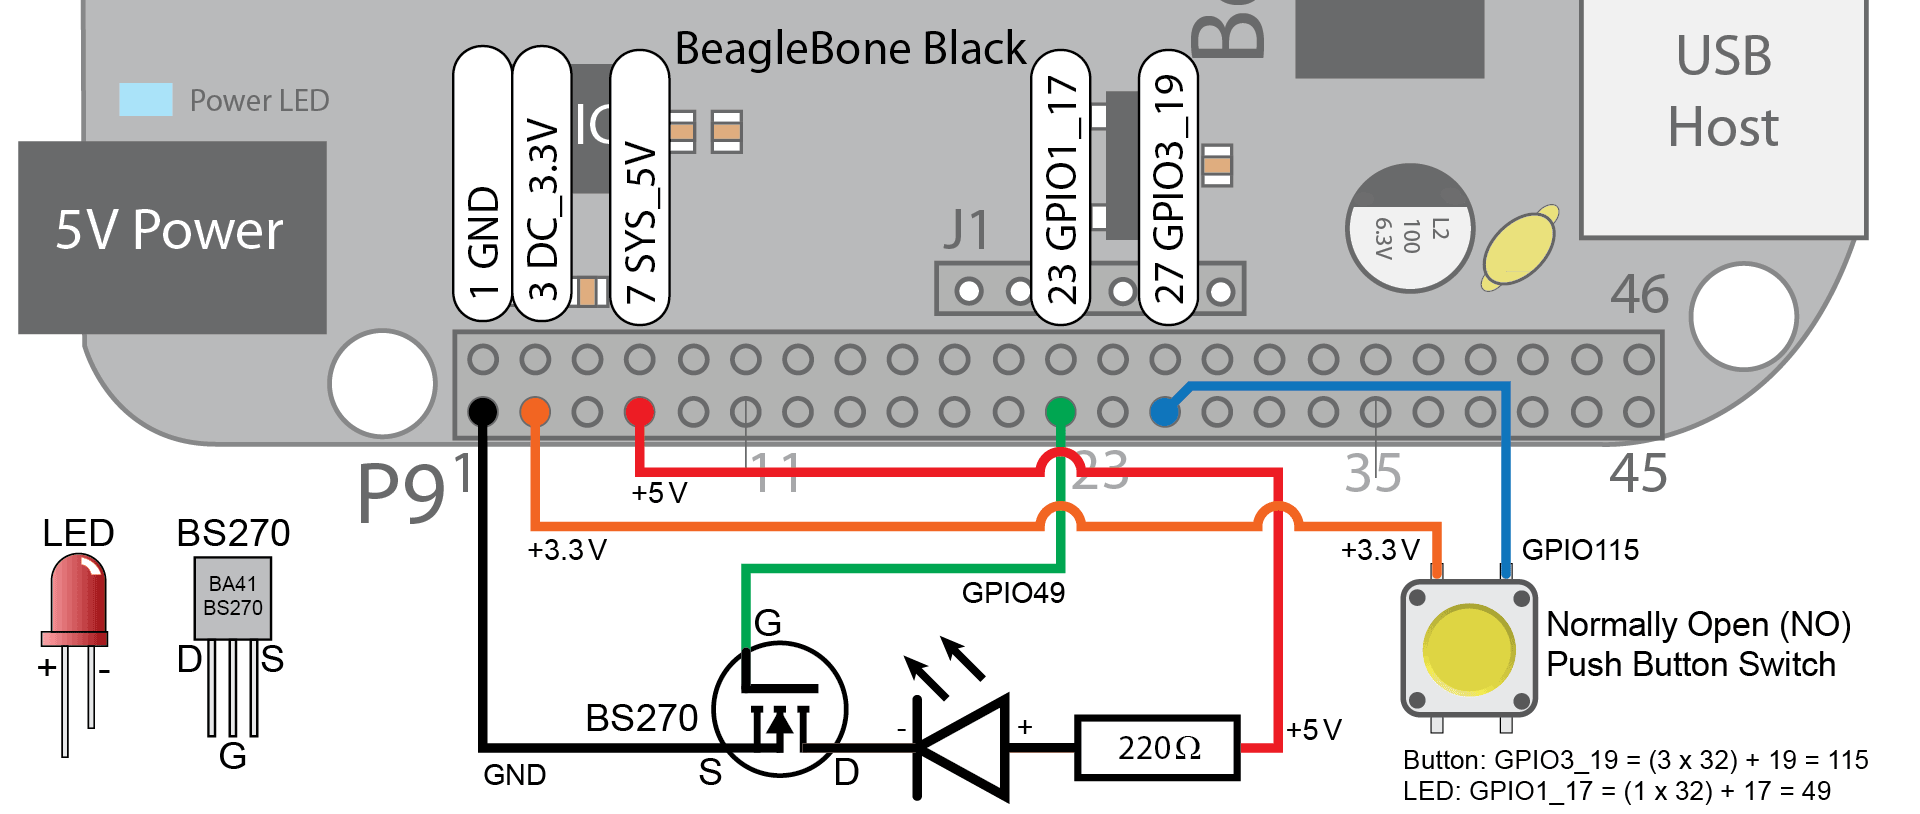 Writing A Linux Loadable Kernel Module Lkm Interfacing To Gpios Proper Way Connect Multiple Leds In Parallel Is Like This Each Led Always Be Very Careful That You Wire Circuits These Correctly Mistake May Destroy Your Beaglebone